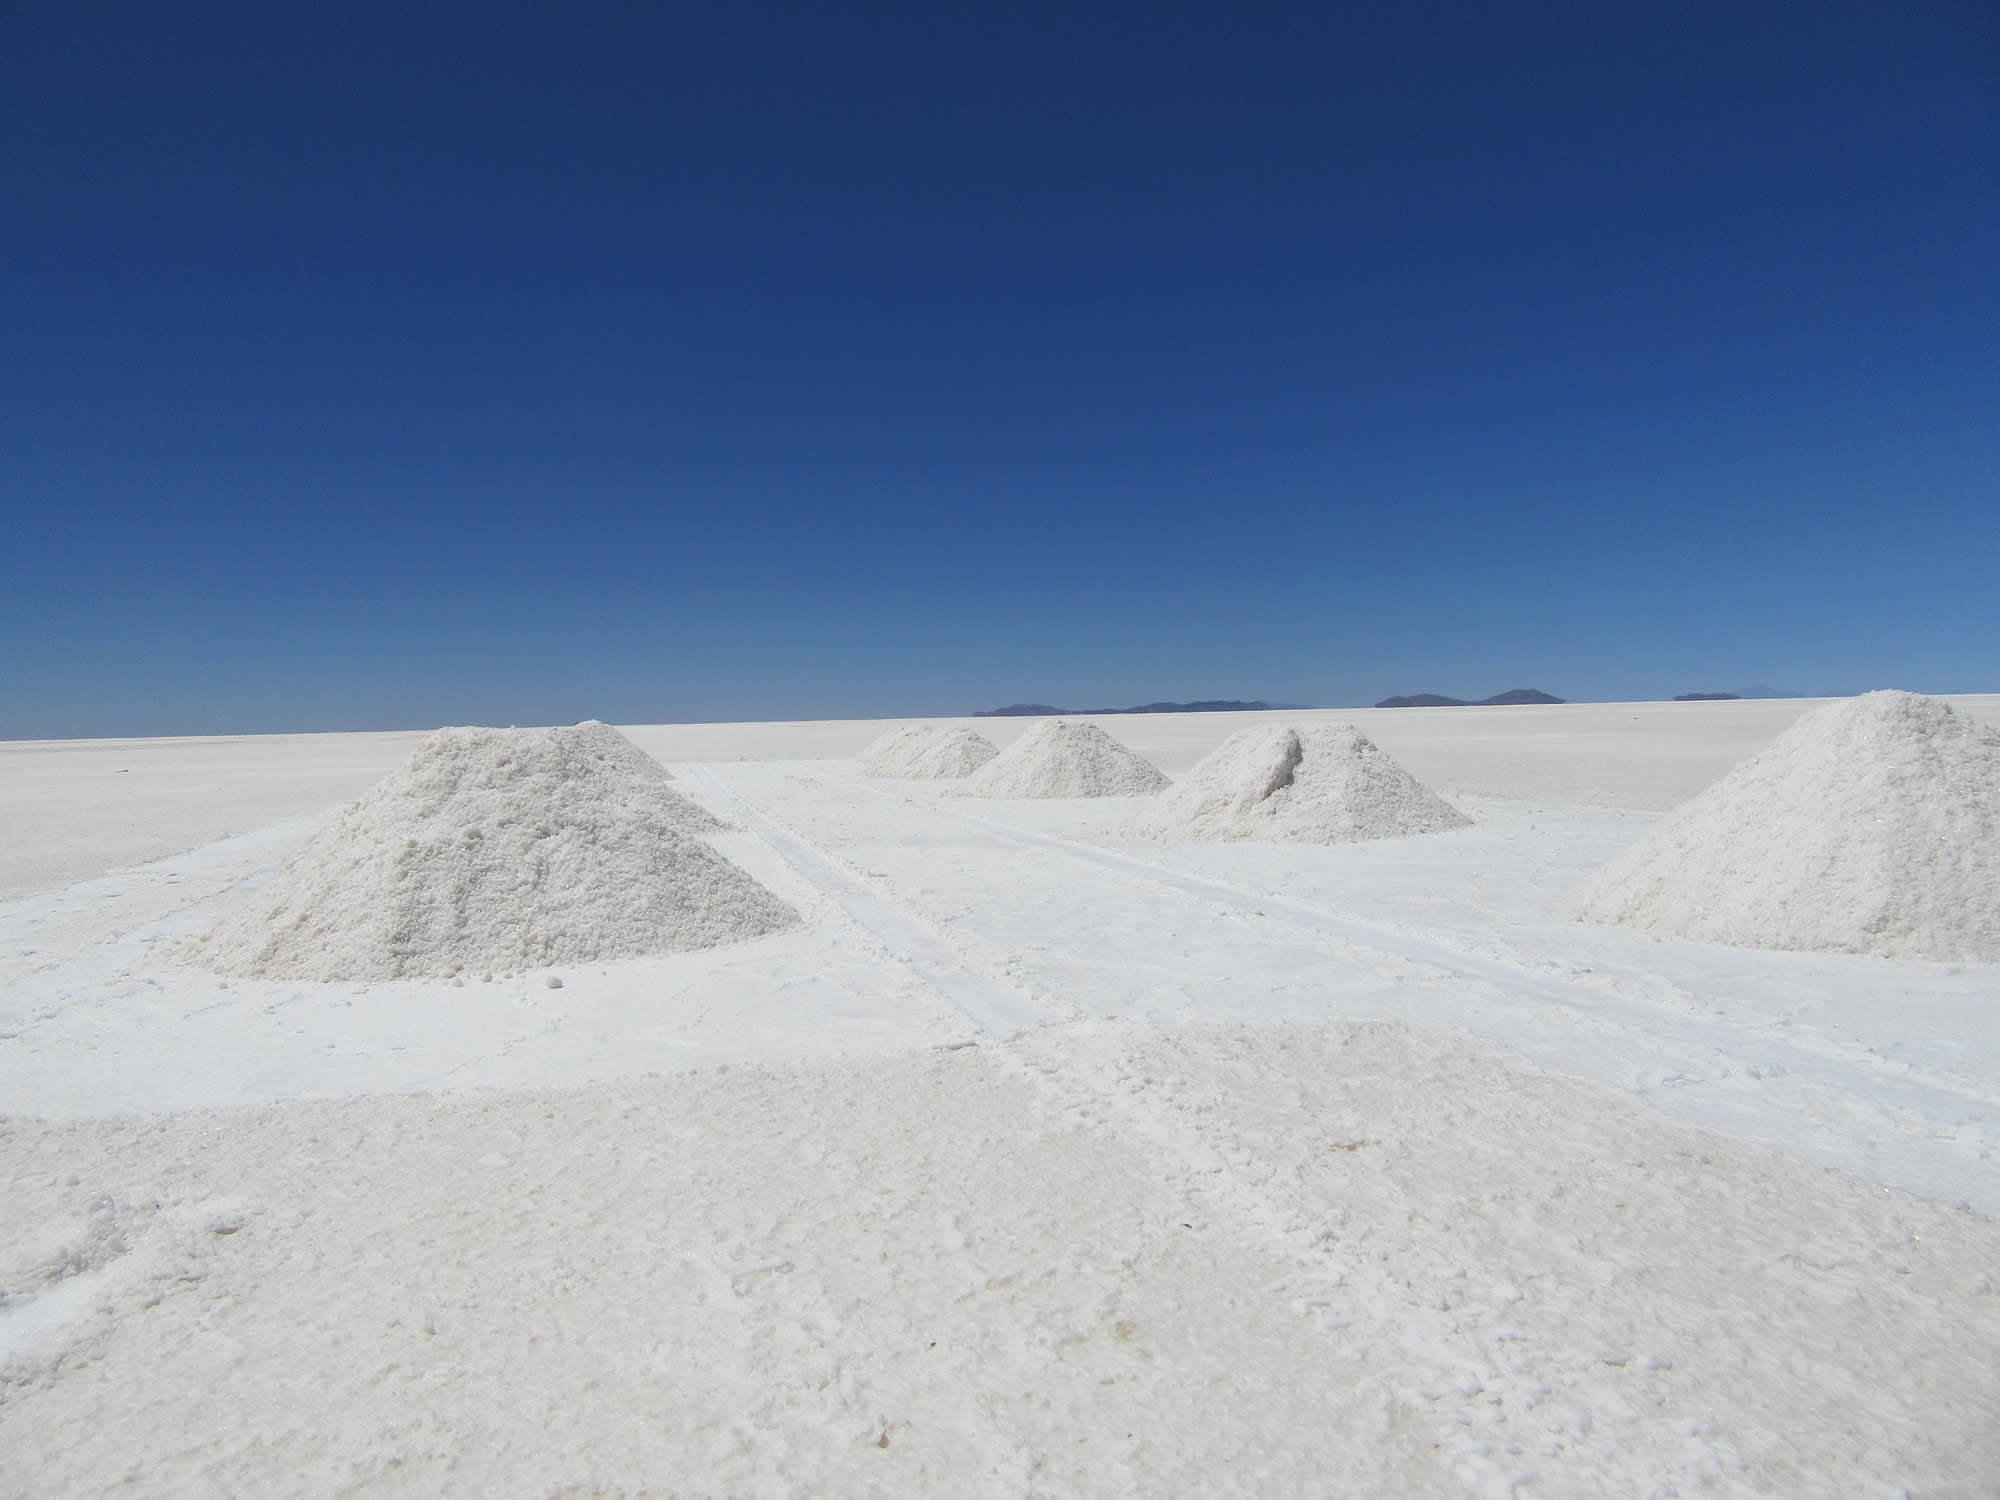 La Paz - Uyuni Salt Flat - La Paz Shared Tour by Bus, 3 Days, 4 Nights